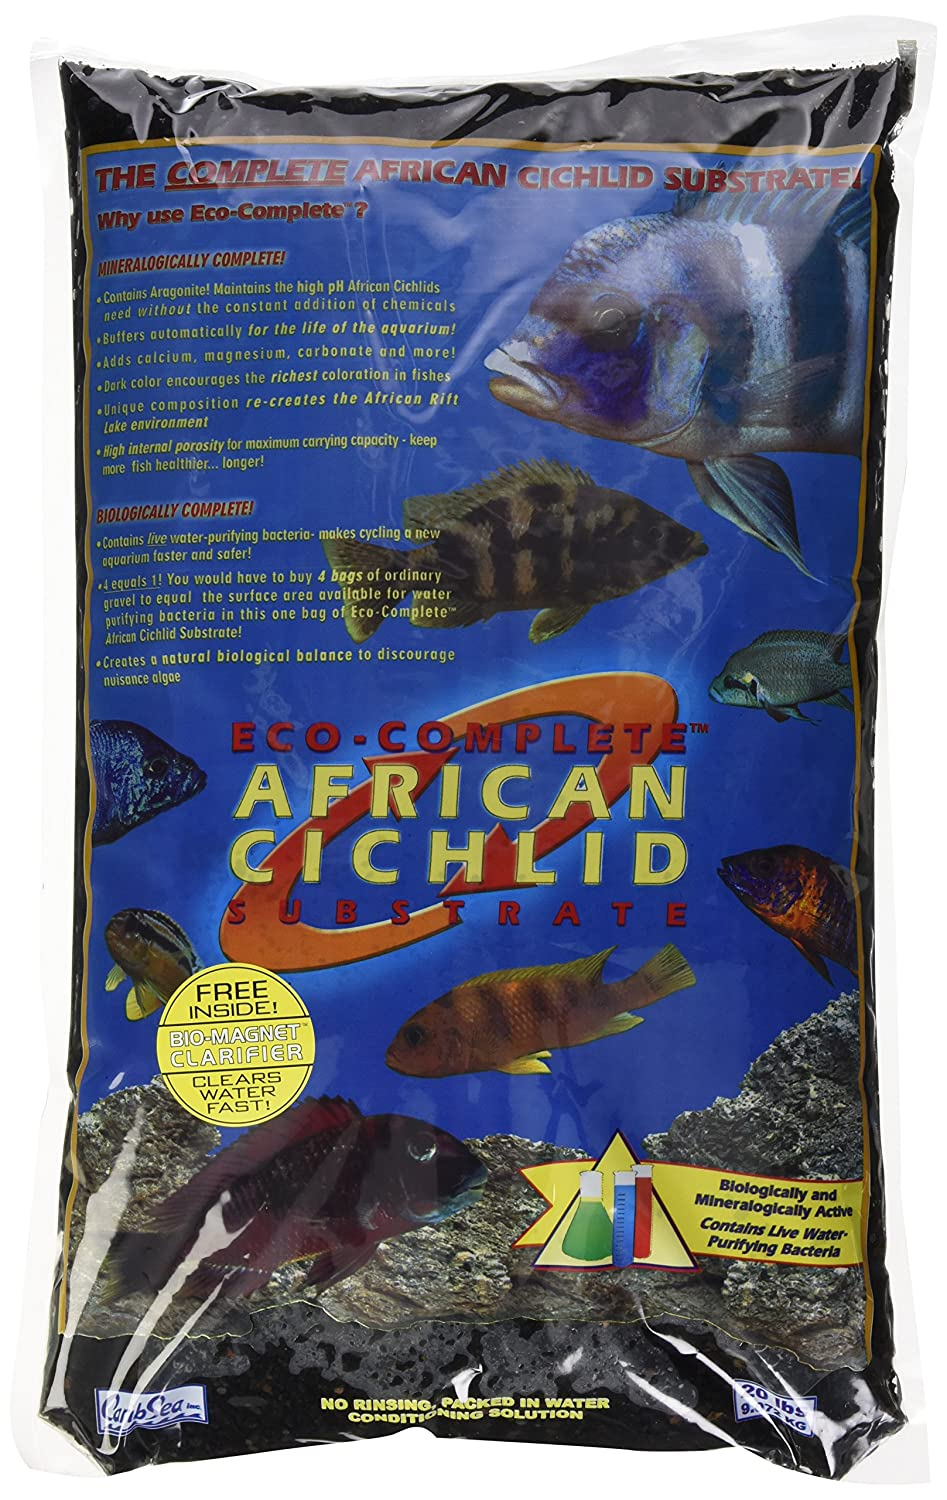 CaribSea Aquatics Eco-Complete African Cichlid Zack Sand, 20-Pound, Black